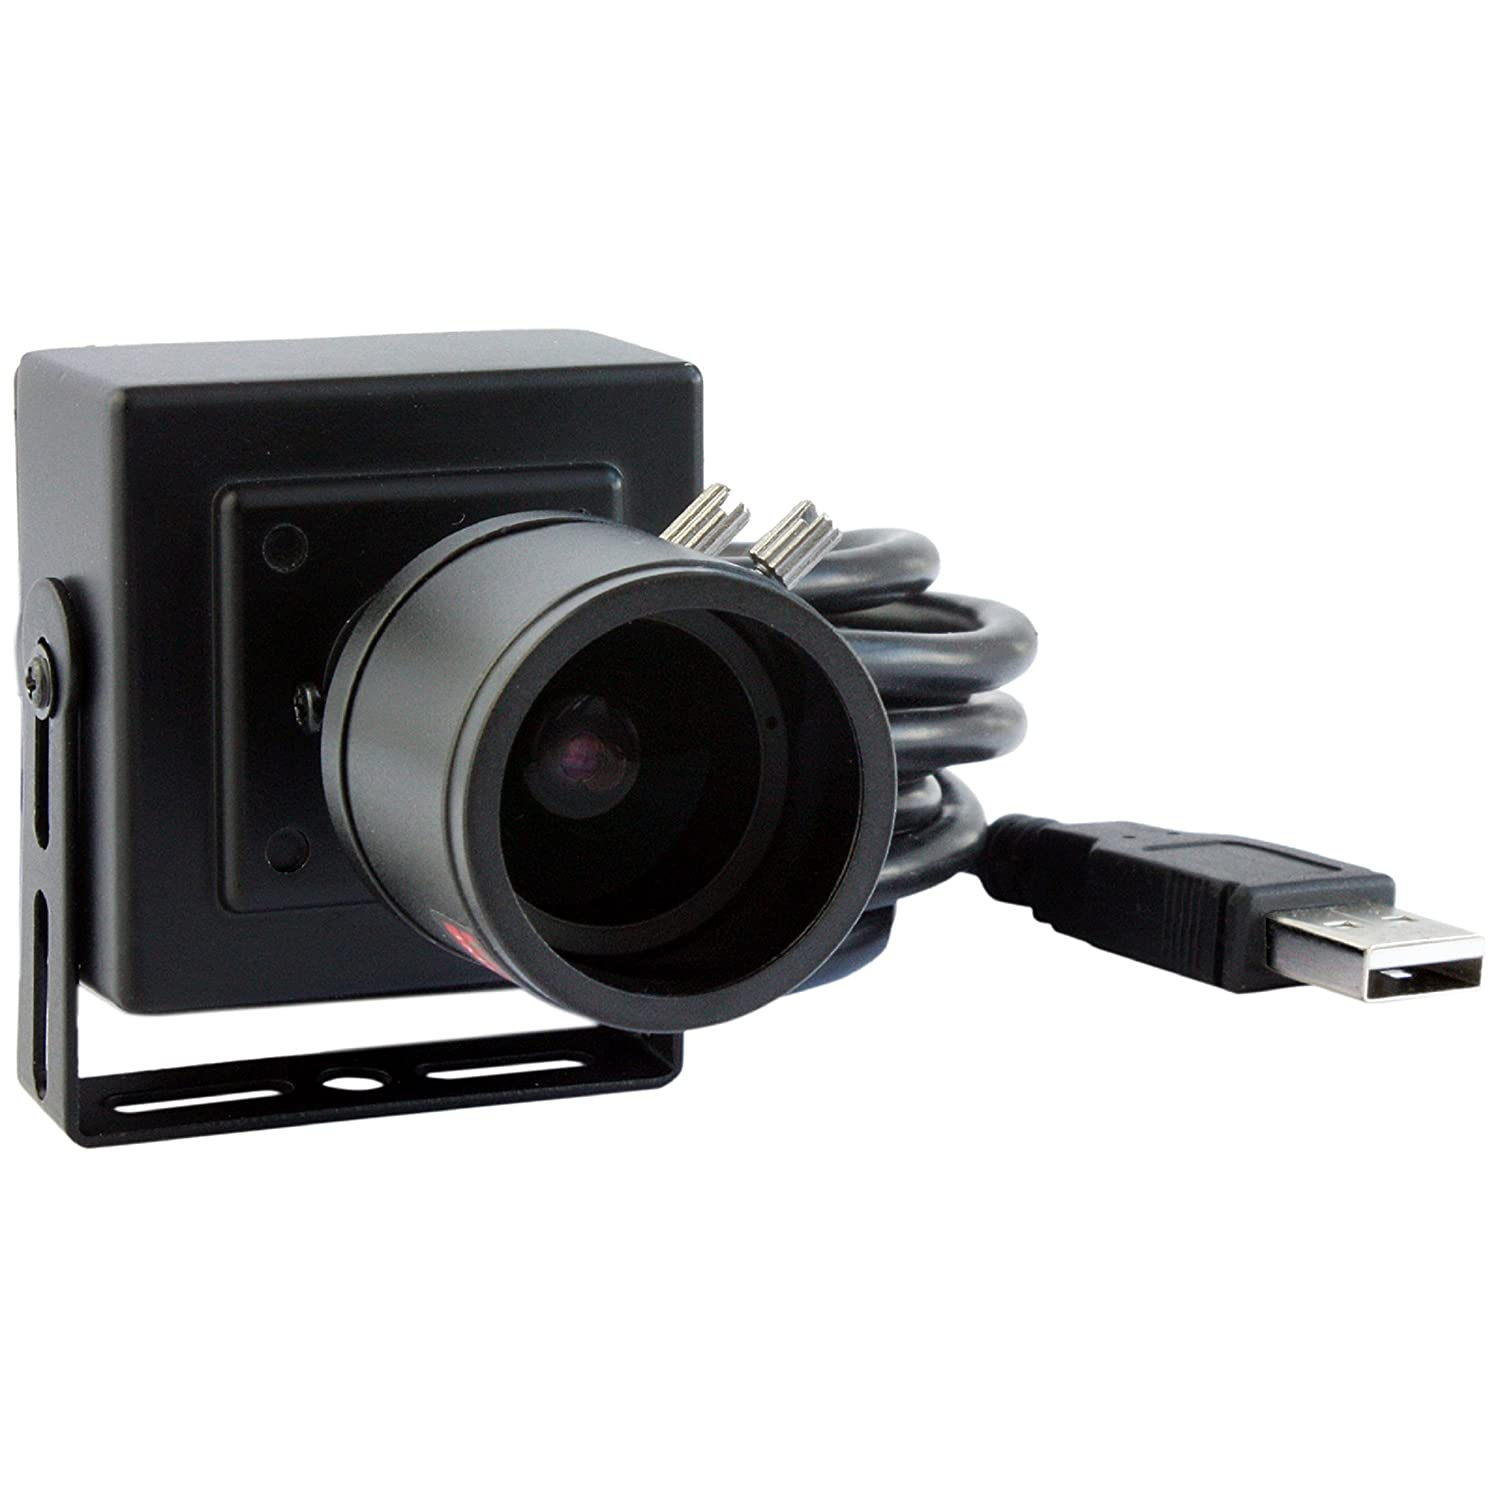 ELP 2.8-12mm Lens Varifocal Mini Box USB camera 1.3megapixel for Linux Android Windows System Ailipu Technology Co. Ltd